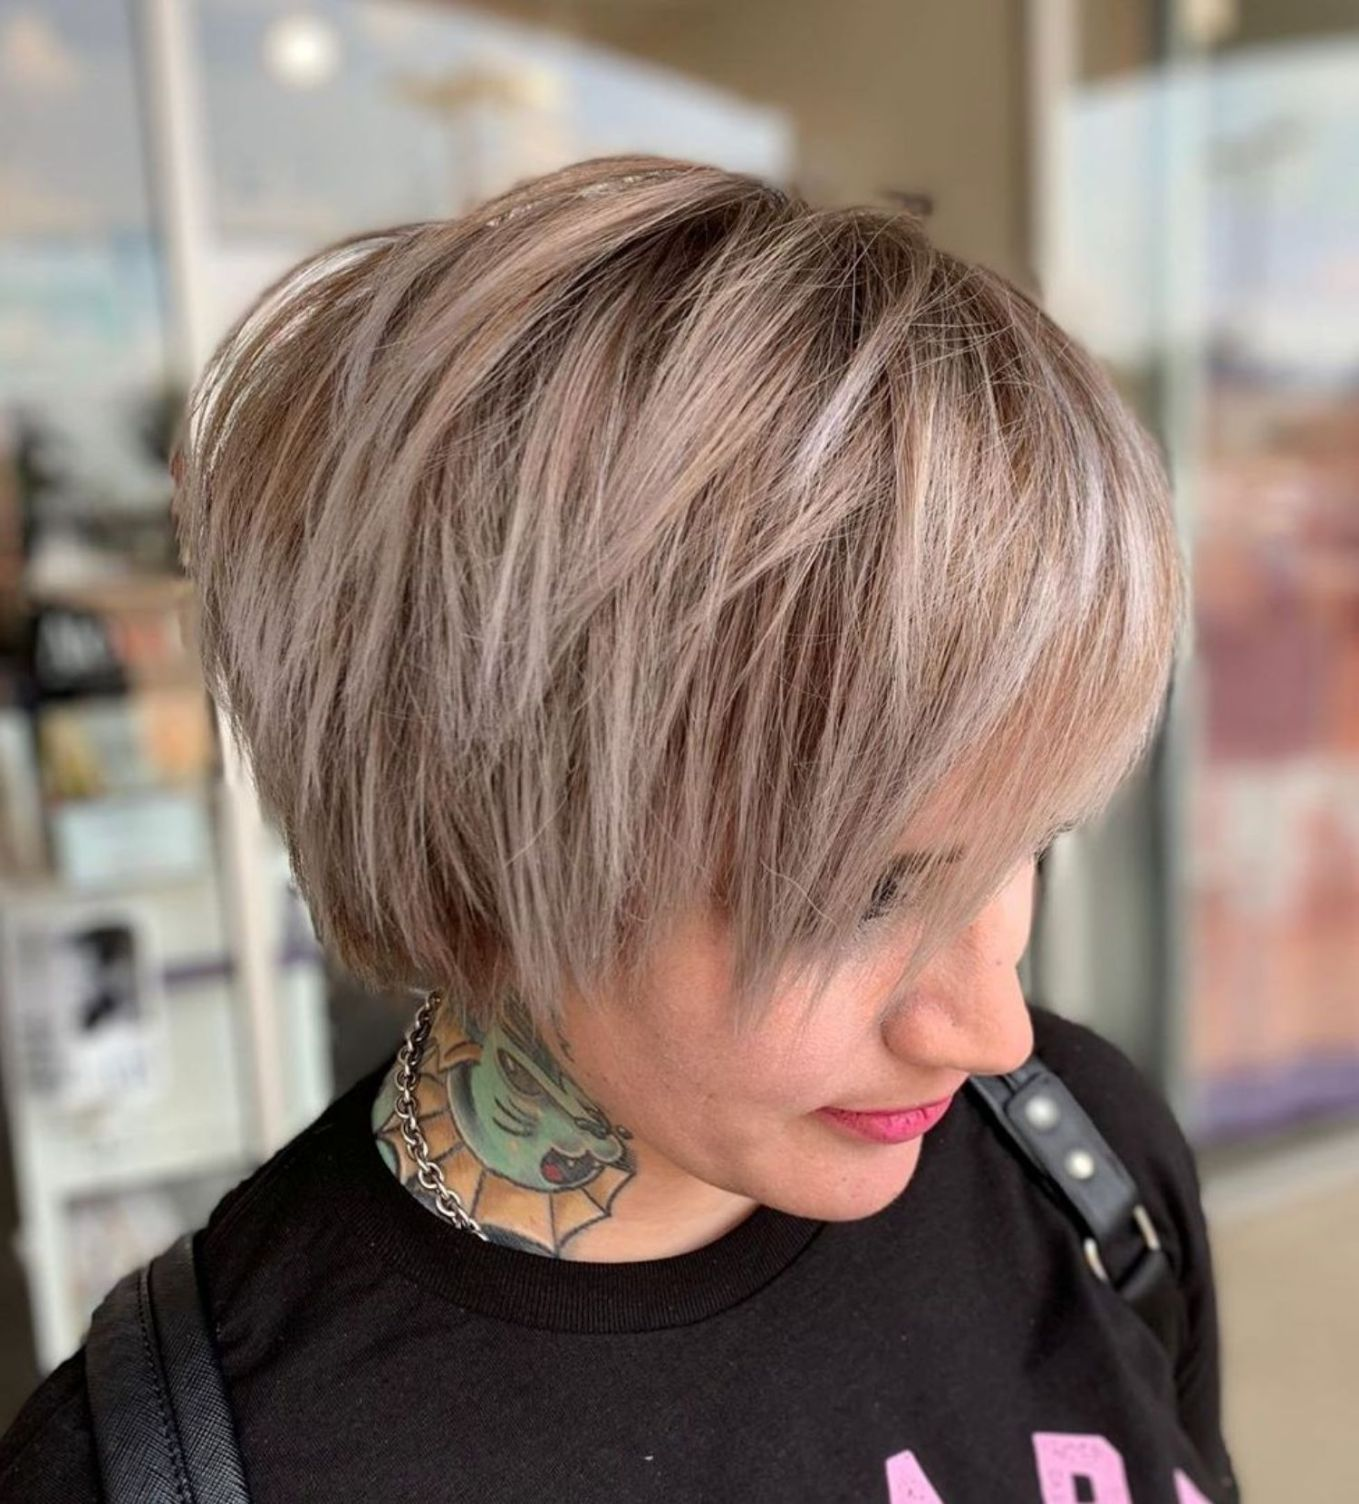 Short Layered Hairstyles For Straight Hair In 2020 Thin Straight Hair Short Hair With Layers Layered Hair